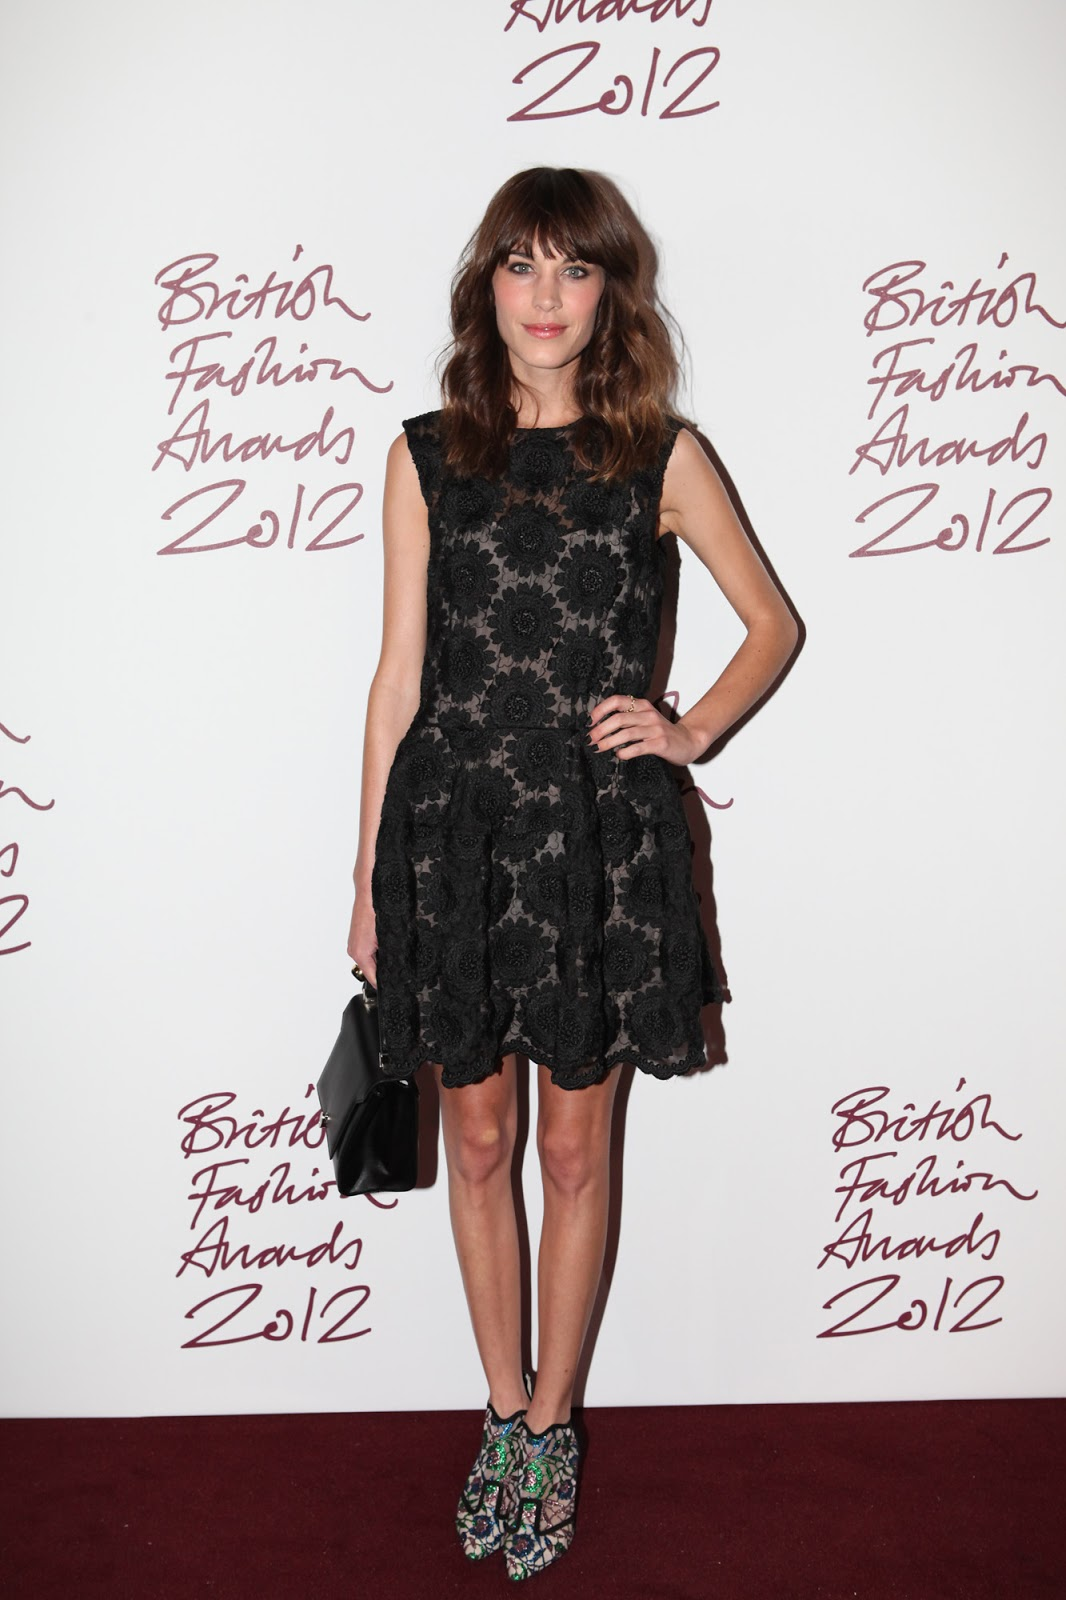 115cf153a0c4 She wore a beautiful Simone Rocha dress and fabulous statement heels by  Nicholas Kirkwood. I adore her style  so effortless